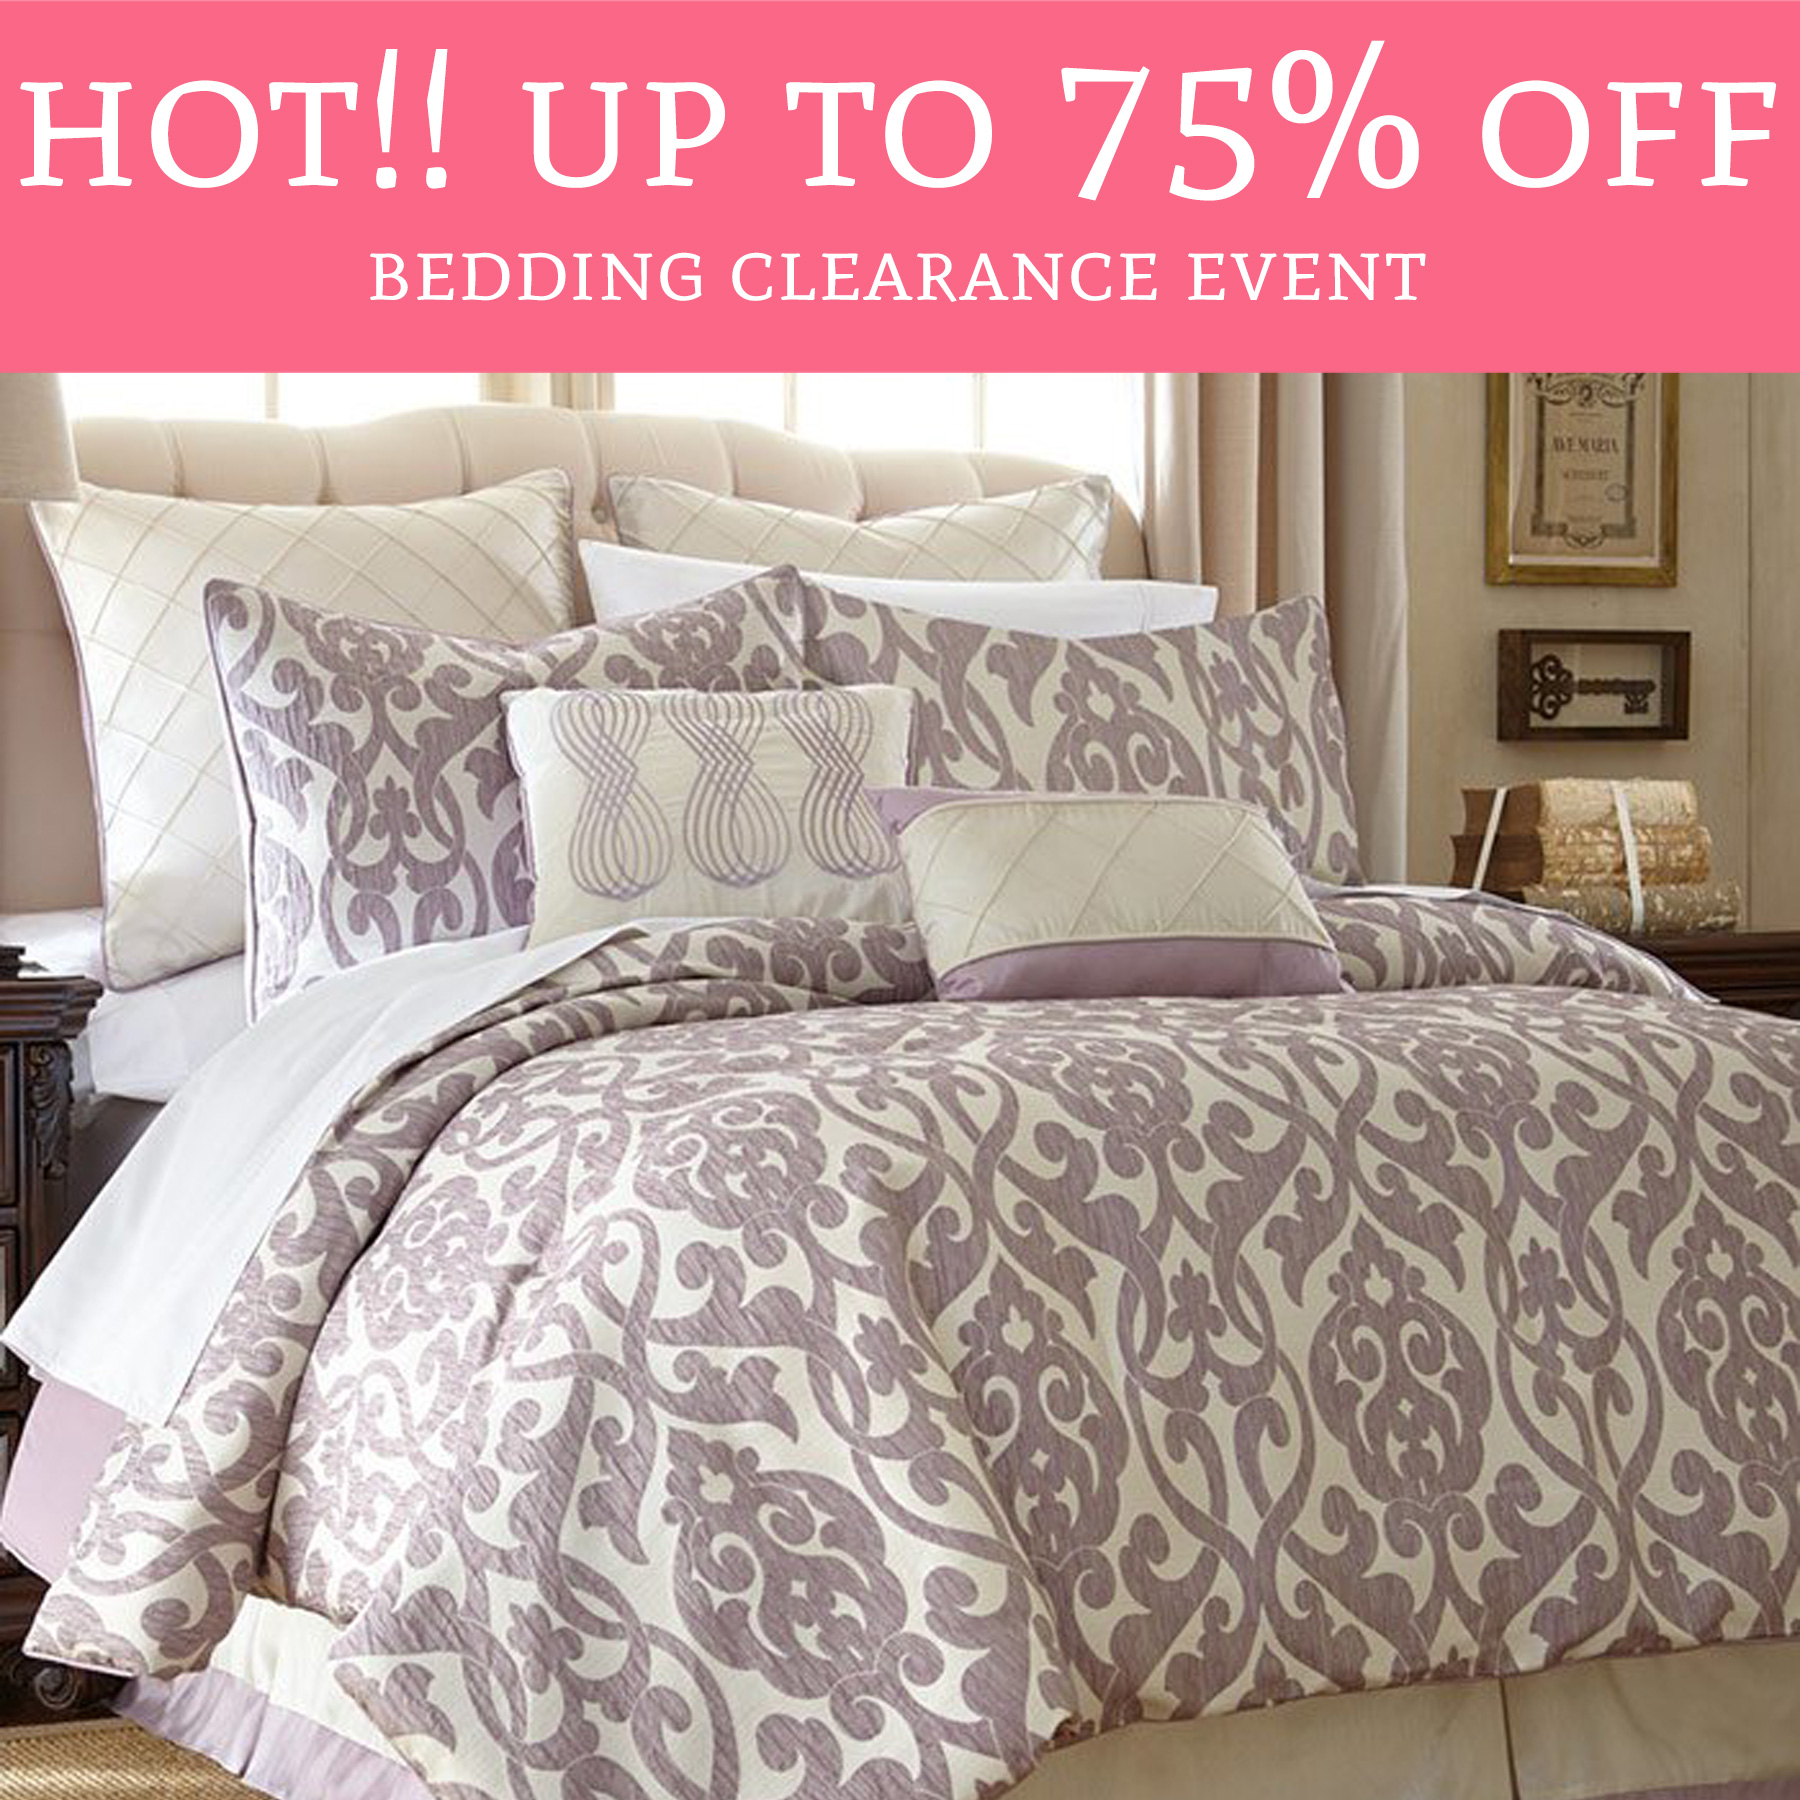 Wayfair Clearance: HOT! Up To 75% Off Bedding Clearance Event!